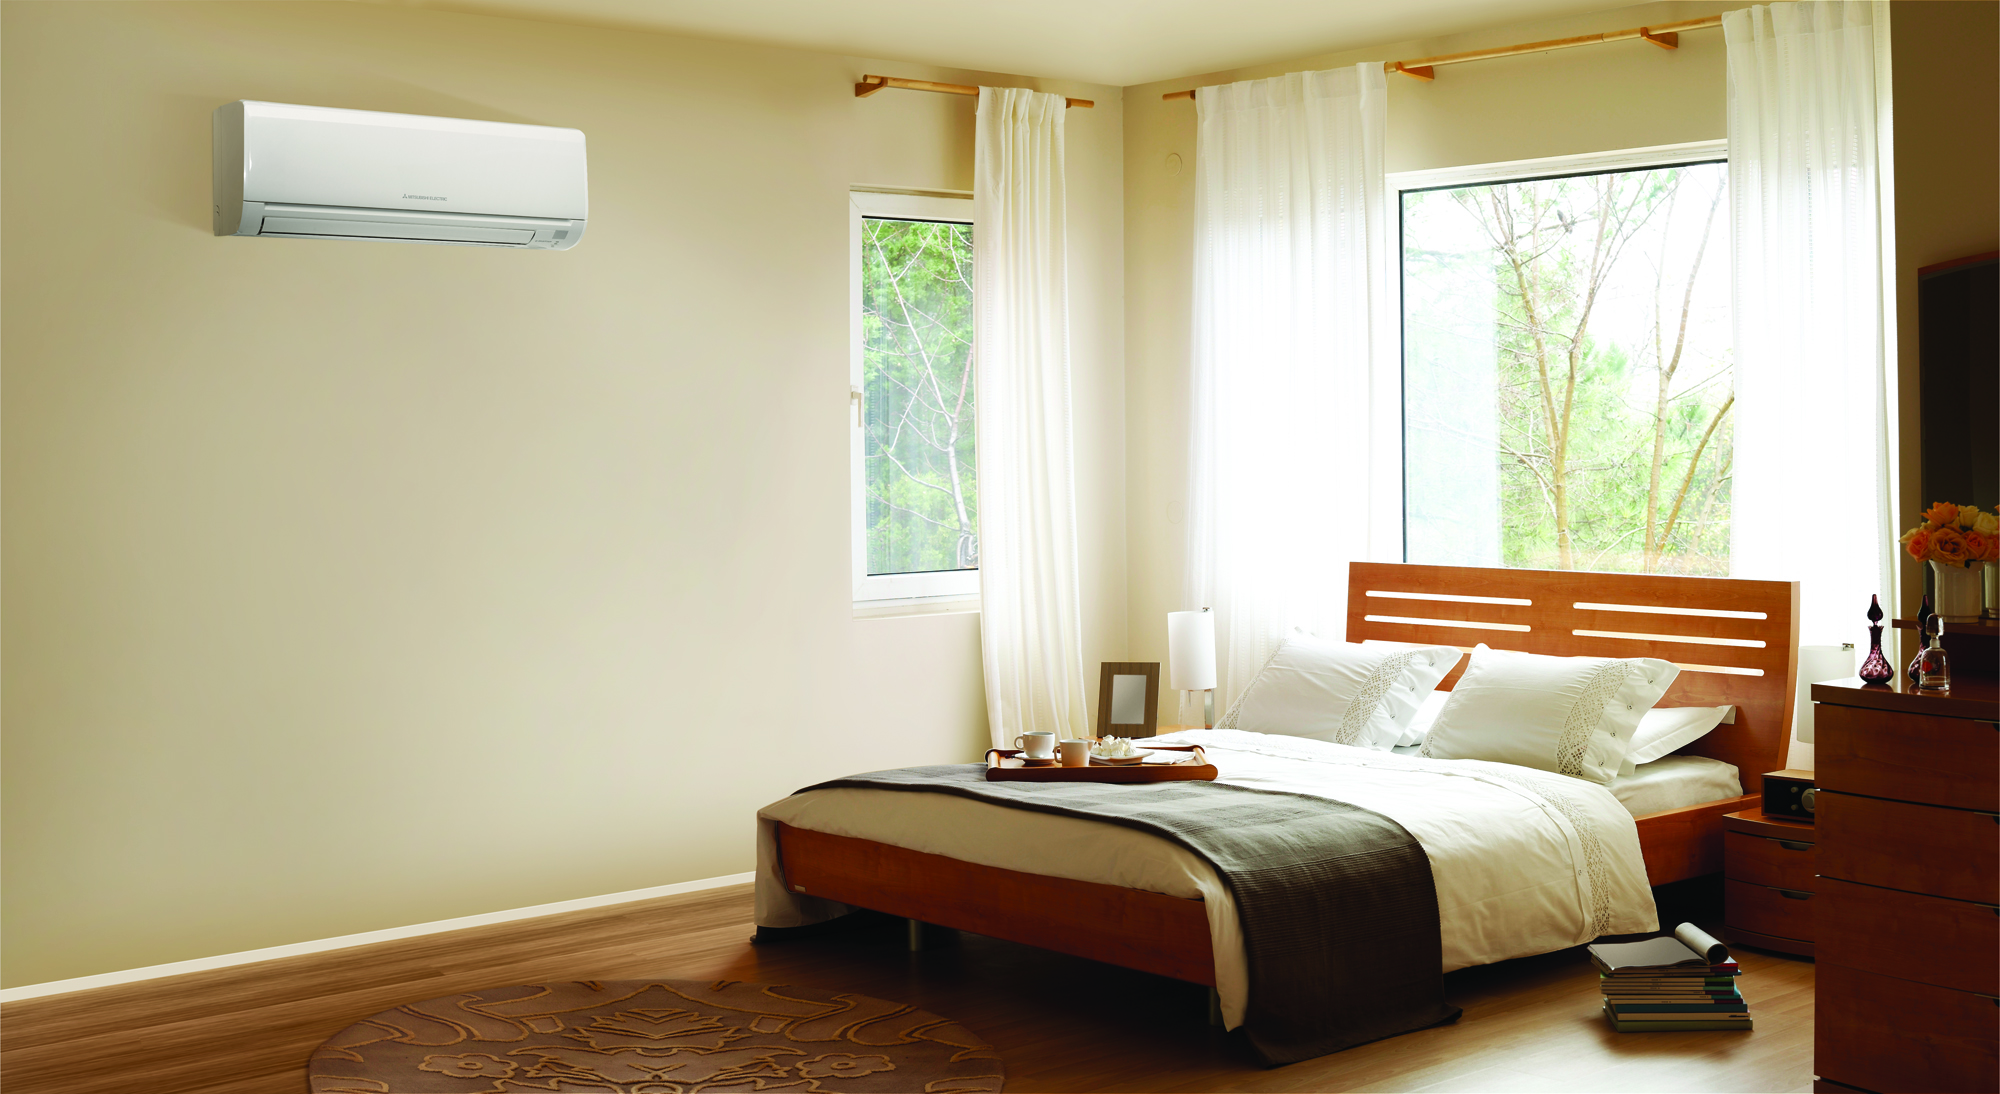 How To Find The Best Heat Pump